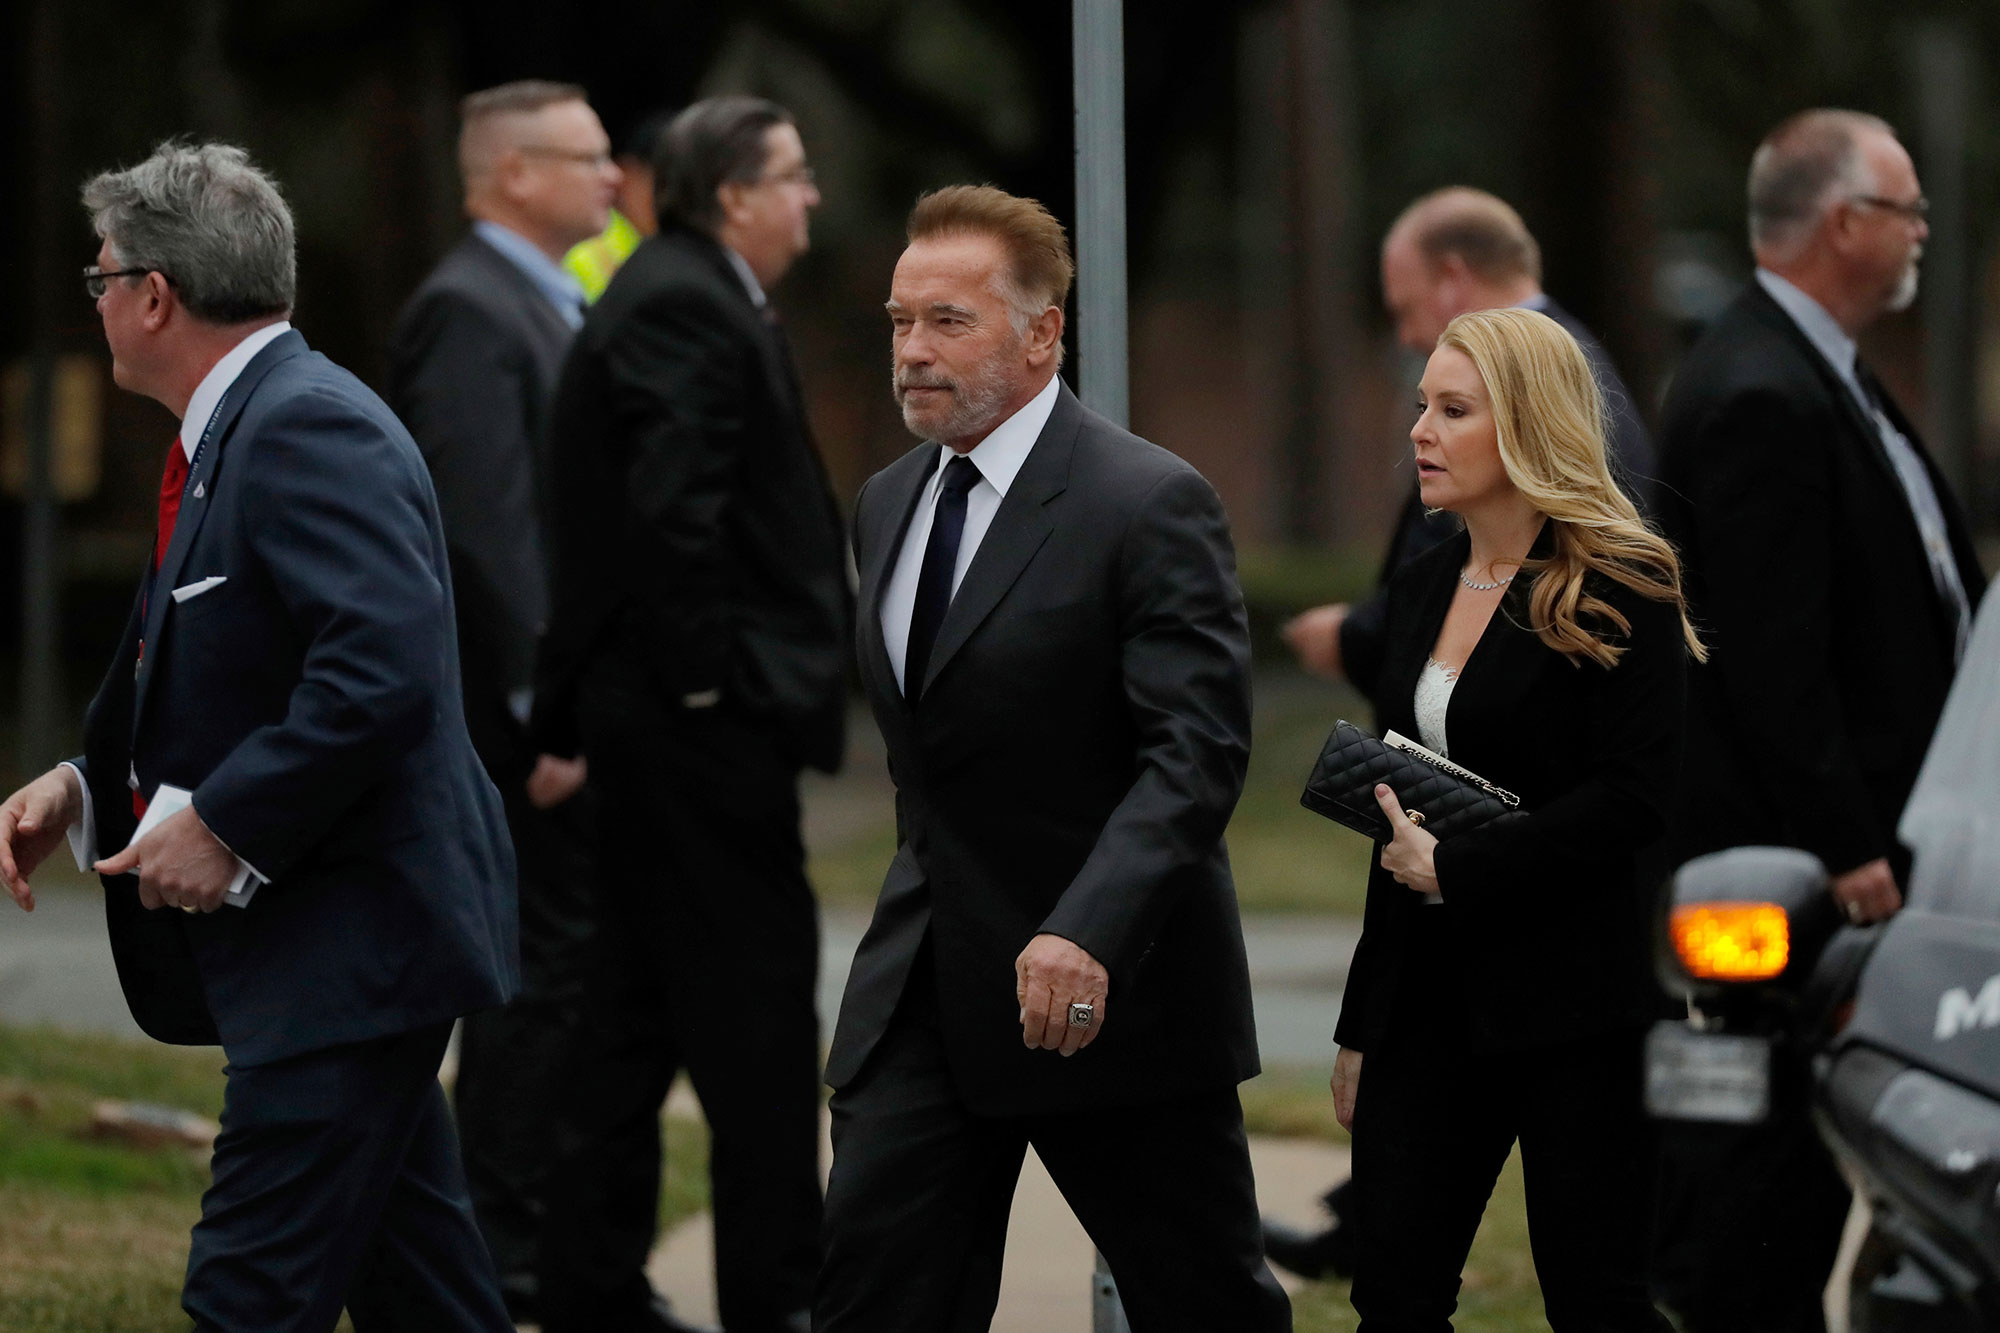 <div class='meta'><div class='origin-logo' data-origin='none'></div><span class='caption-text' data-credit='Gerald Herbert/AP Photo'>Former California Gov. Arnold Schwarzenegger arrives at a funeral for former President George H.W. Bush at St. Martin's Episcopal Church Thursday, Dec. 6, 2018, in Houston.</span></div>